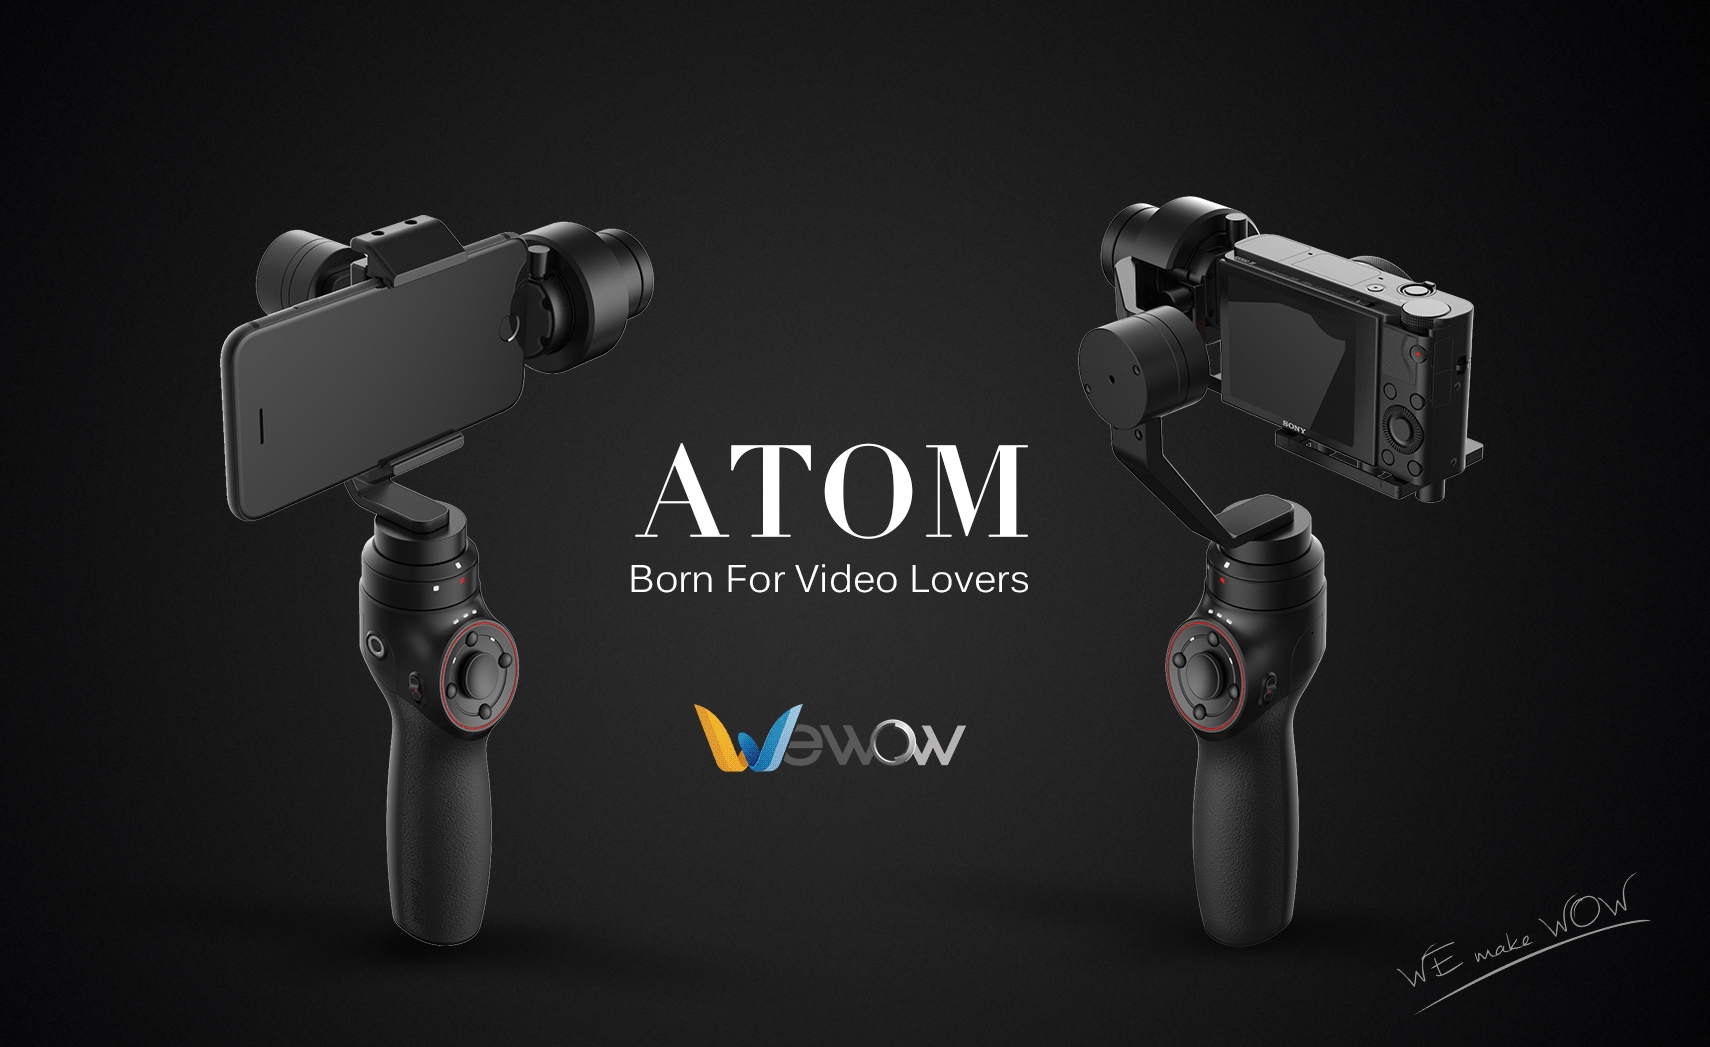 Wewow Product  Atom Series (Photo: Business Wire)